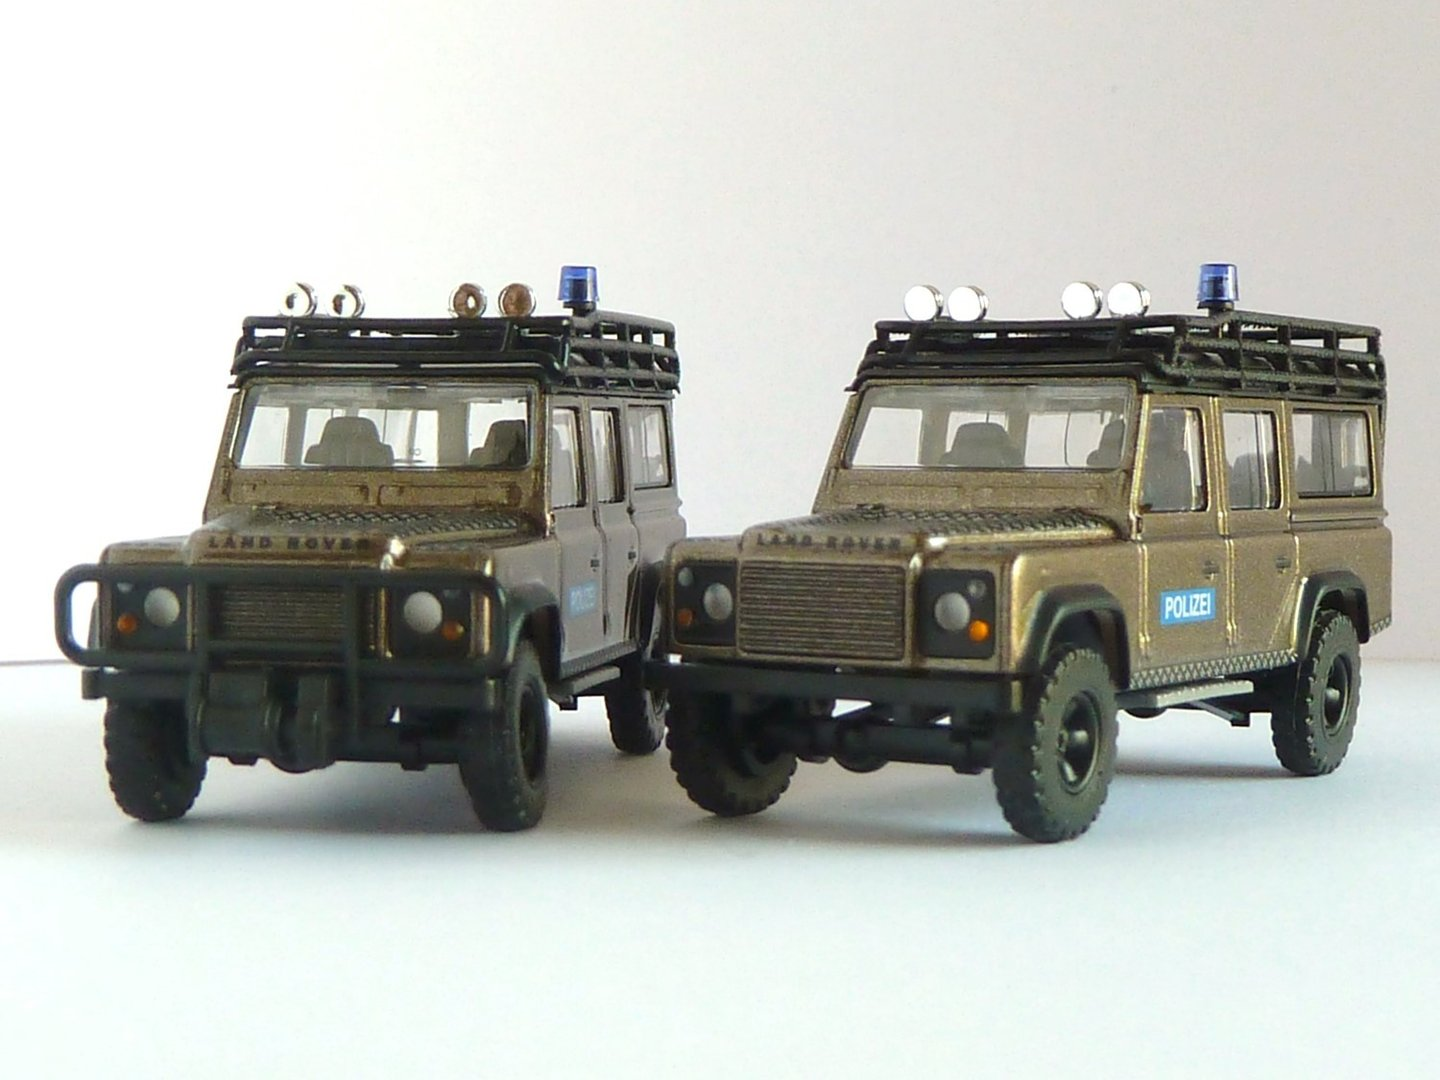 land rover defender gsg 9 der bundespolizei 110 station. Black Bedroom Furniture Sets. Home Design Ideas